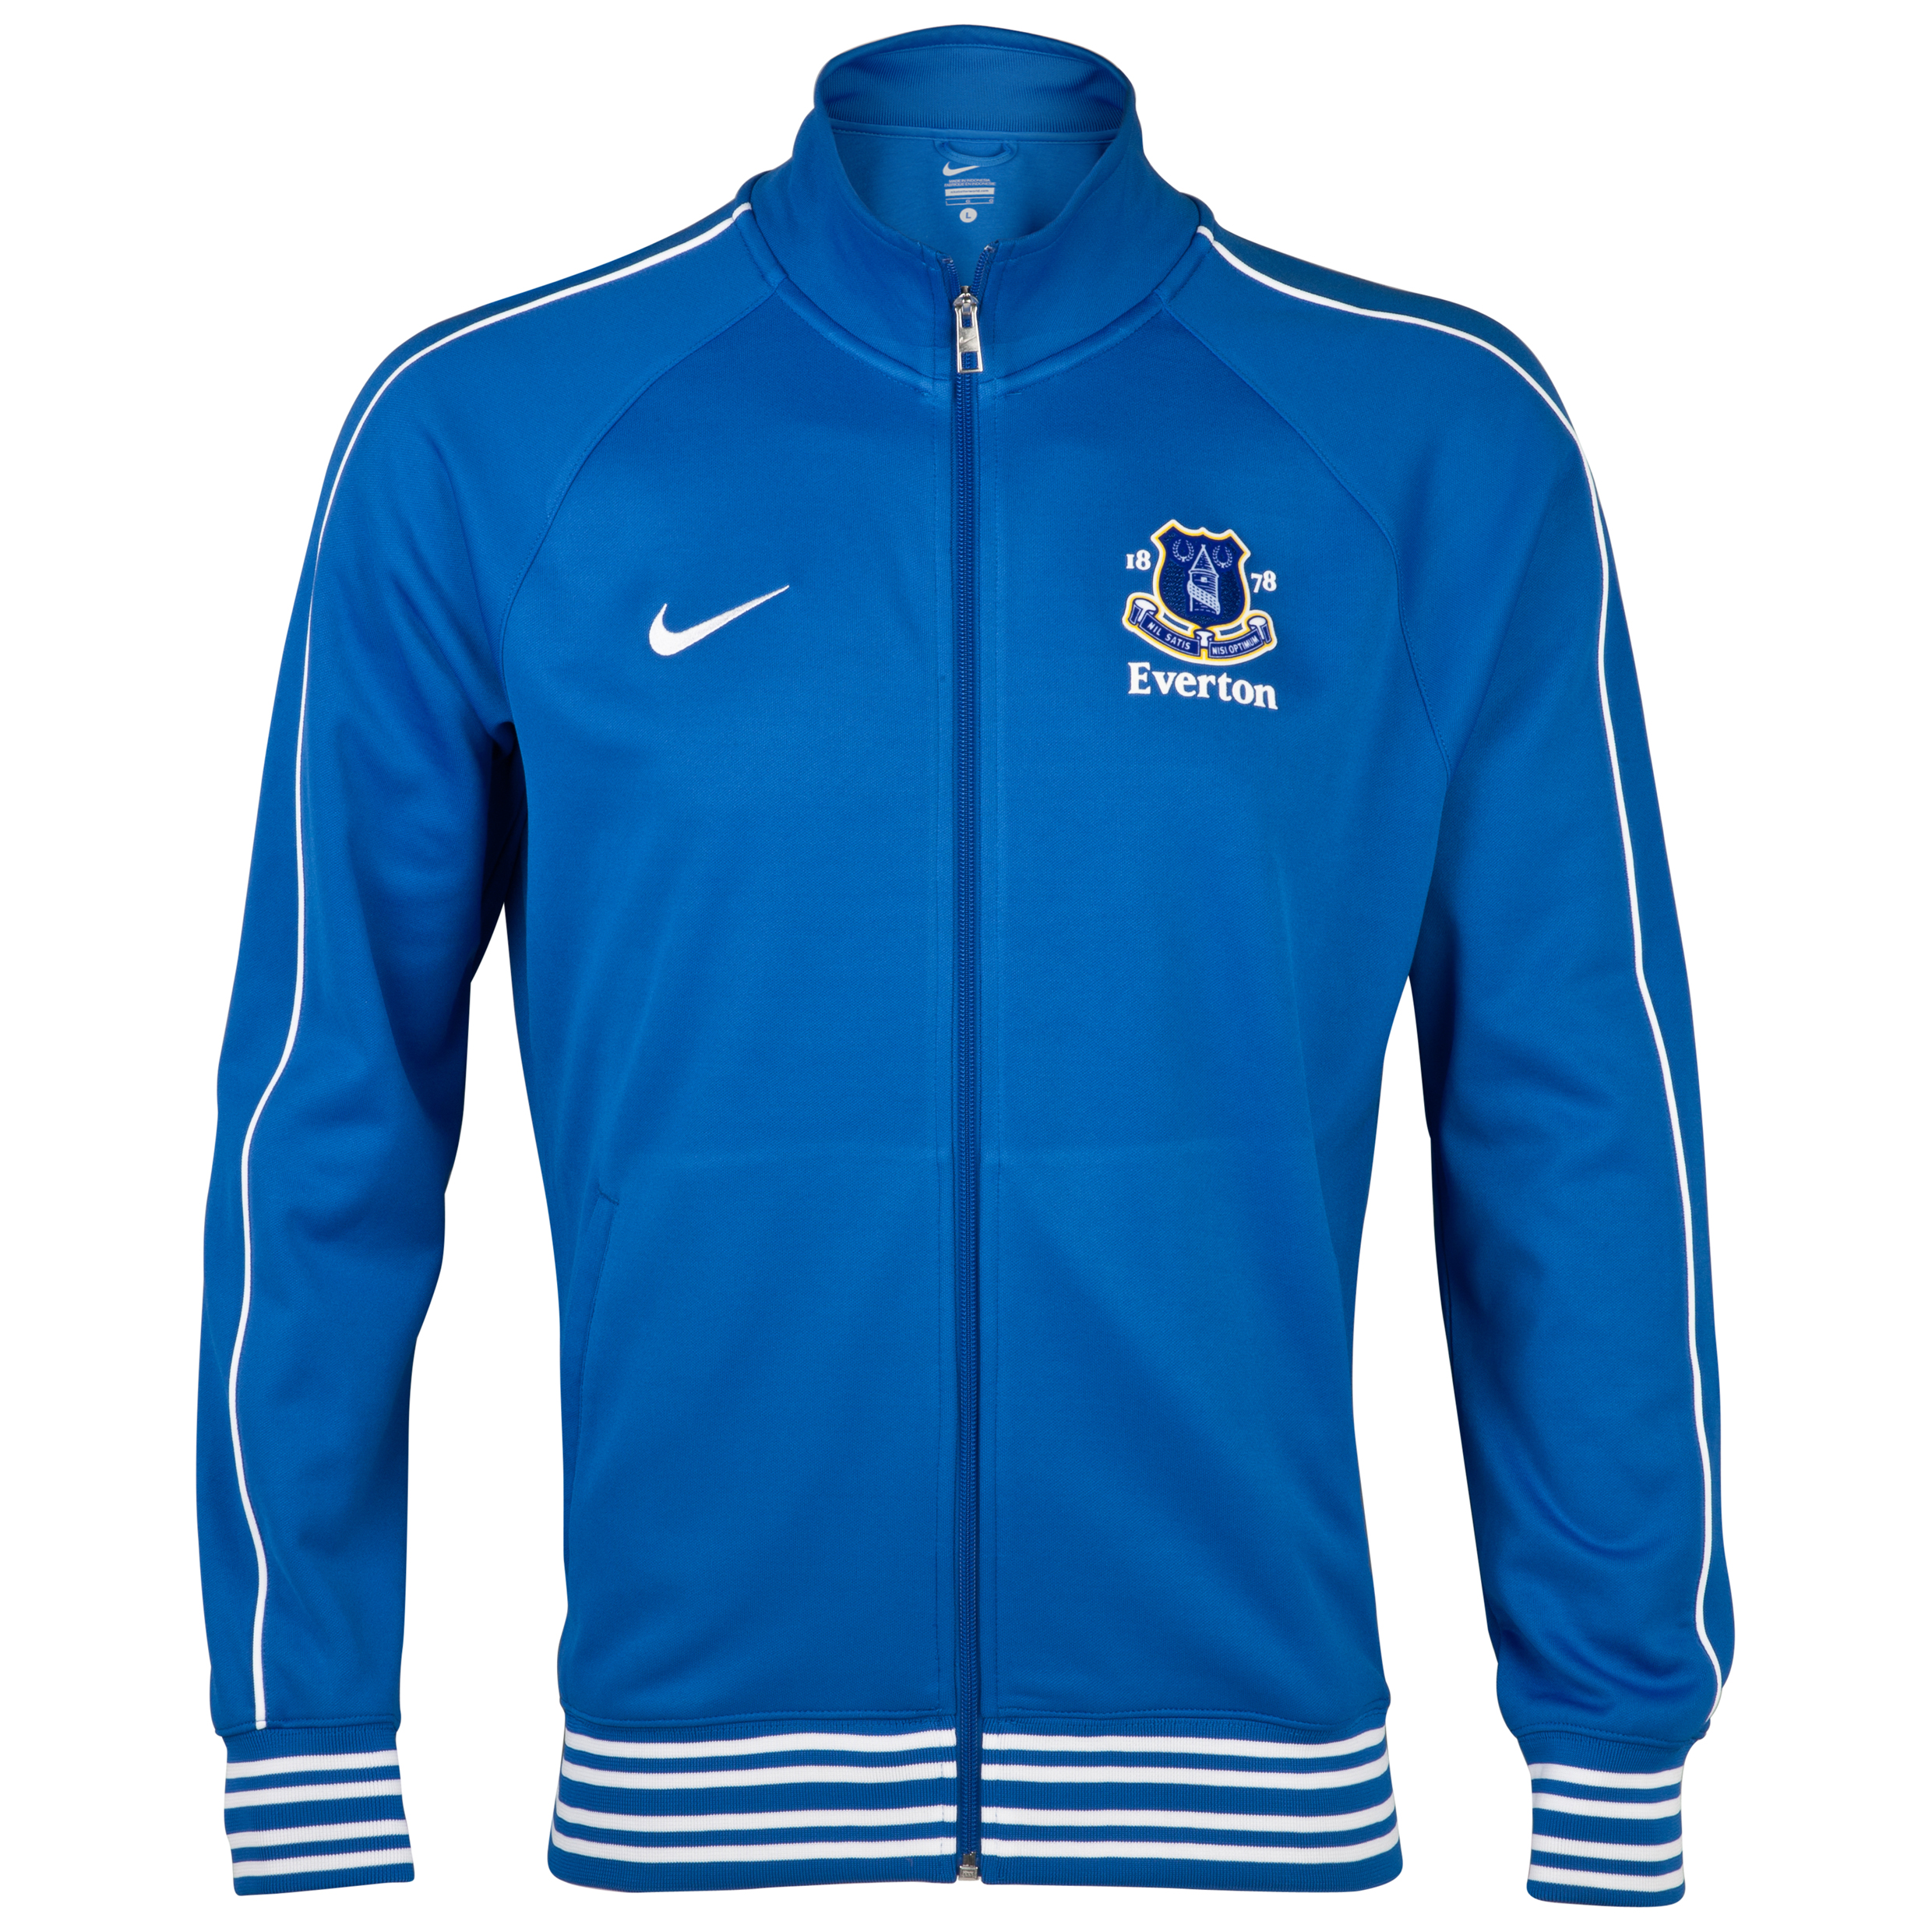 Everton Anthem Walk Out Jacket - Royal Blue/White